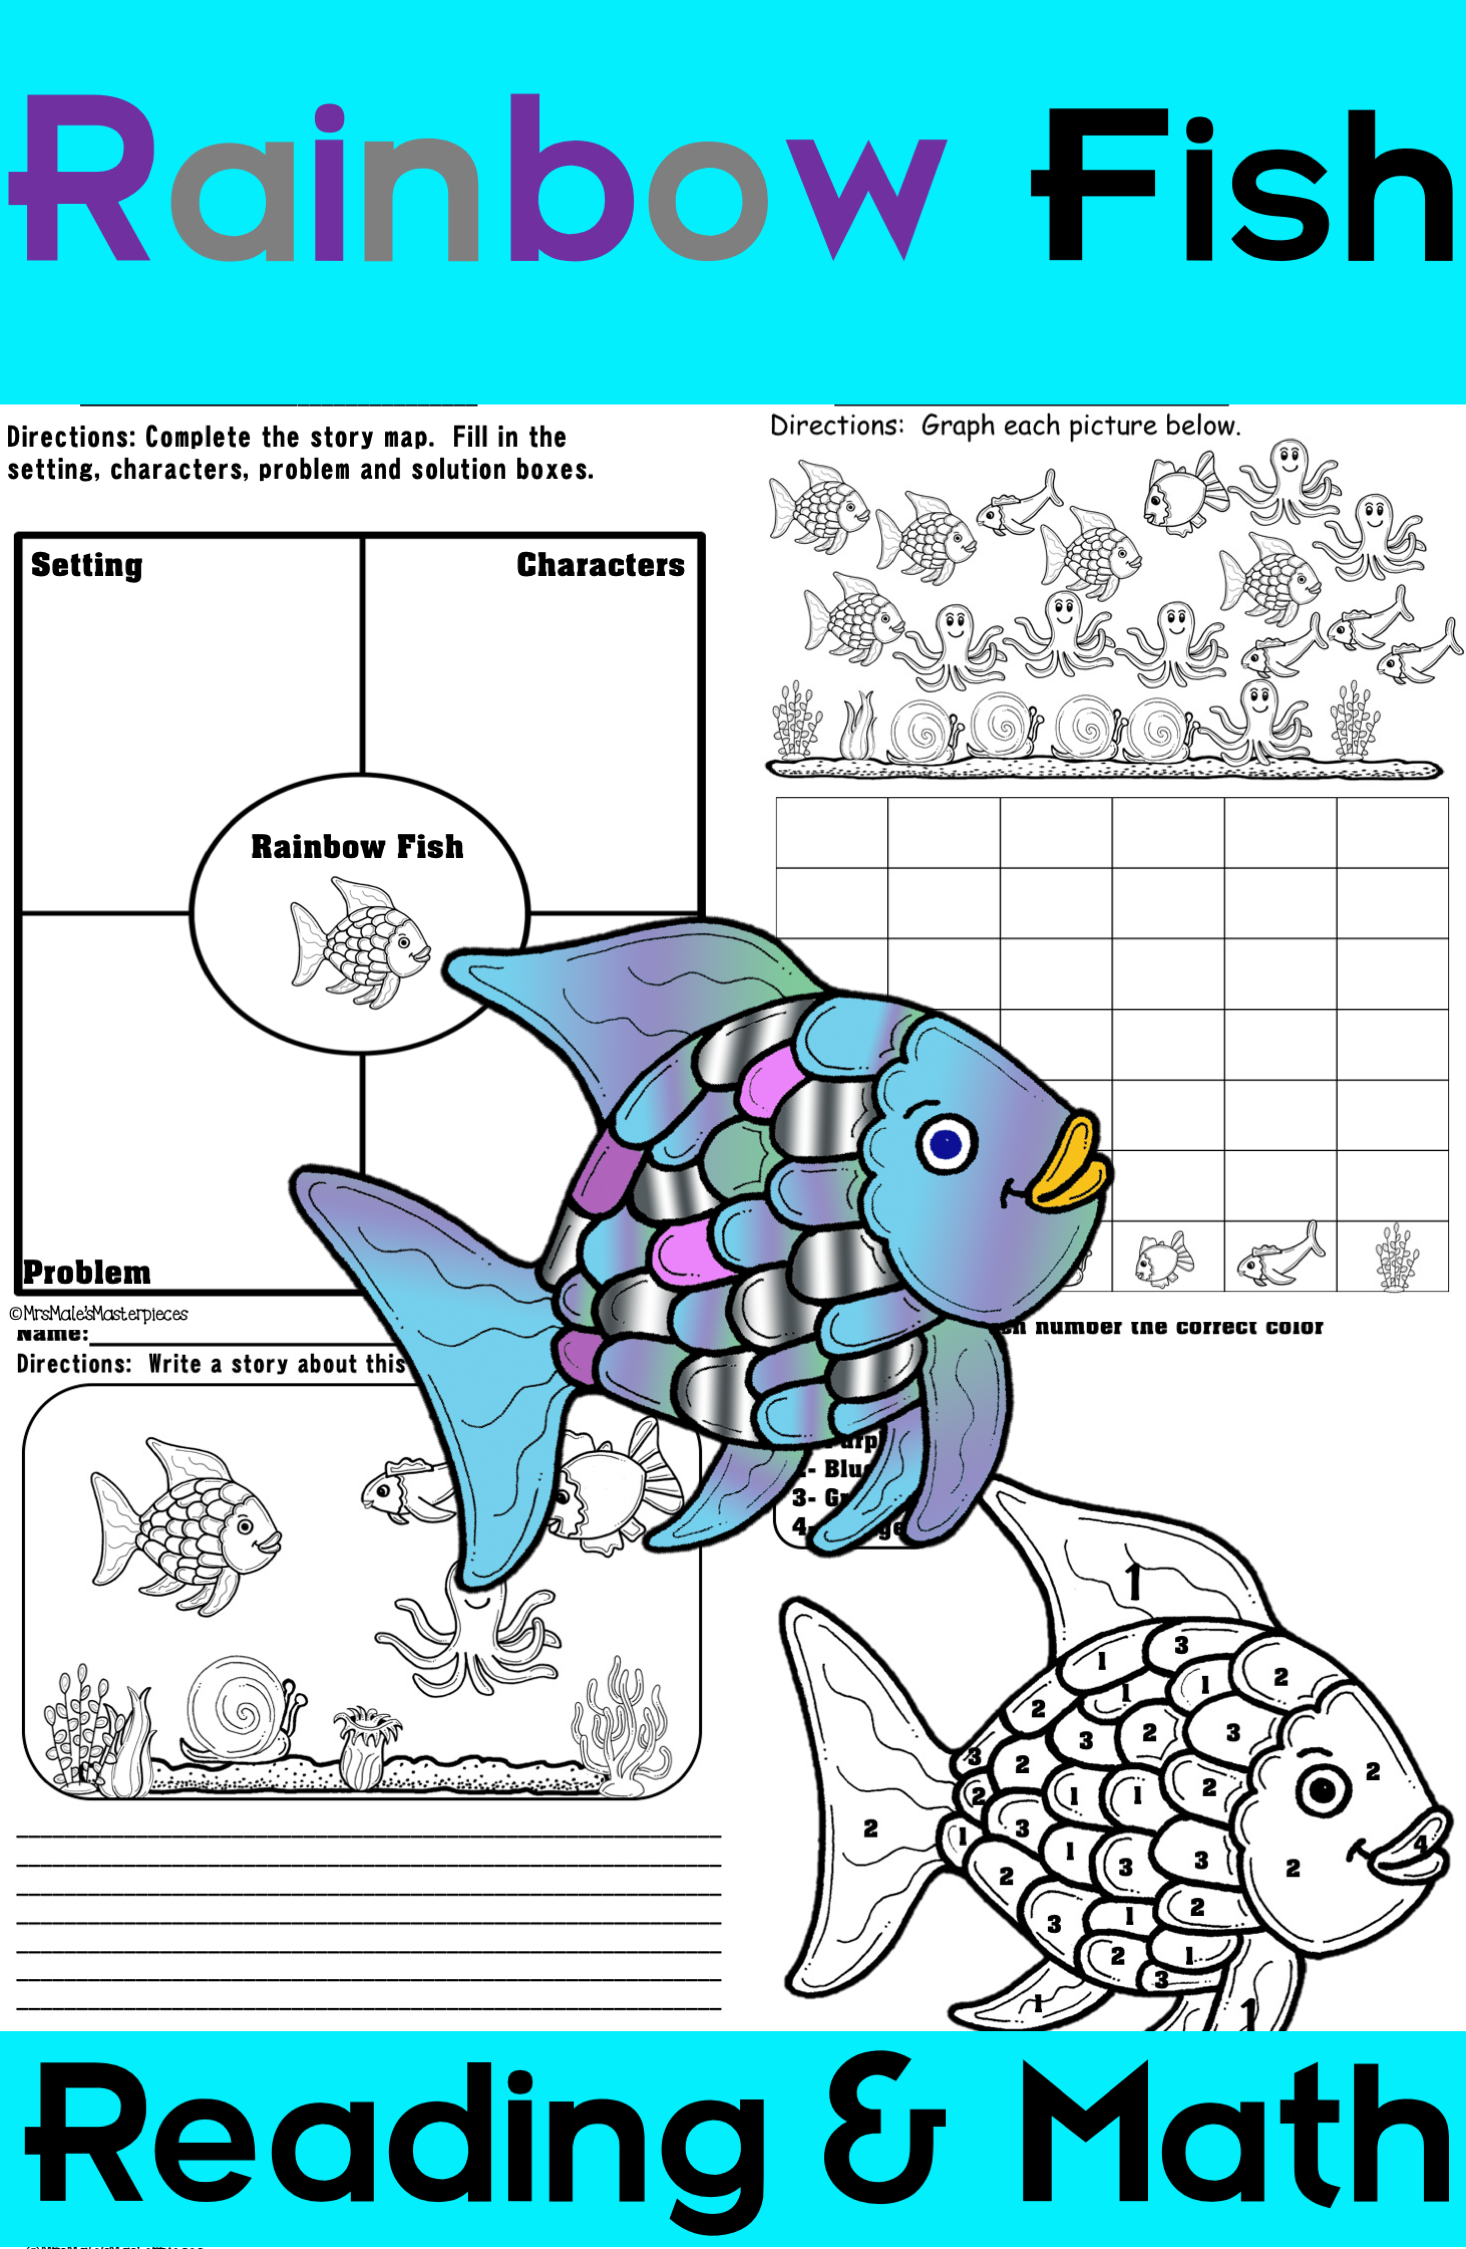 Rainbow Fish Reading And Math Packet With Images Rainbow Fish